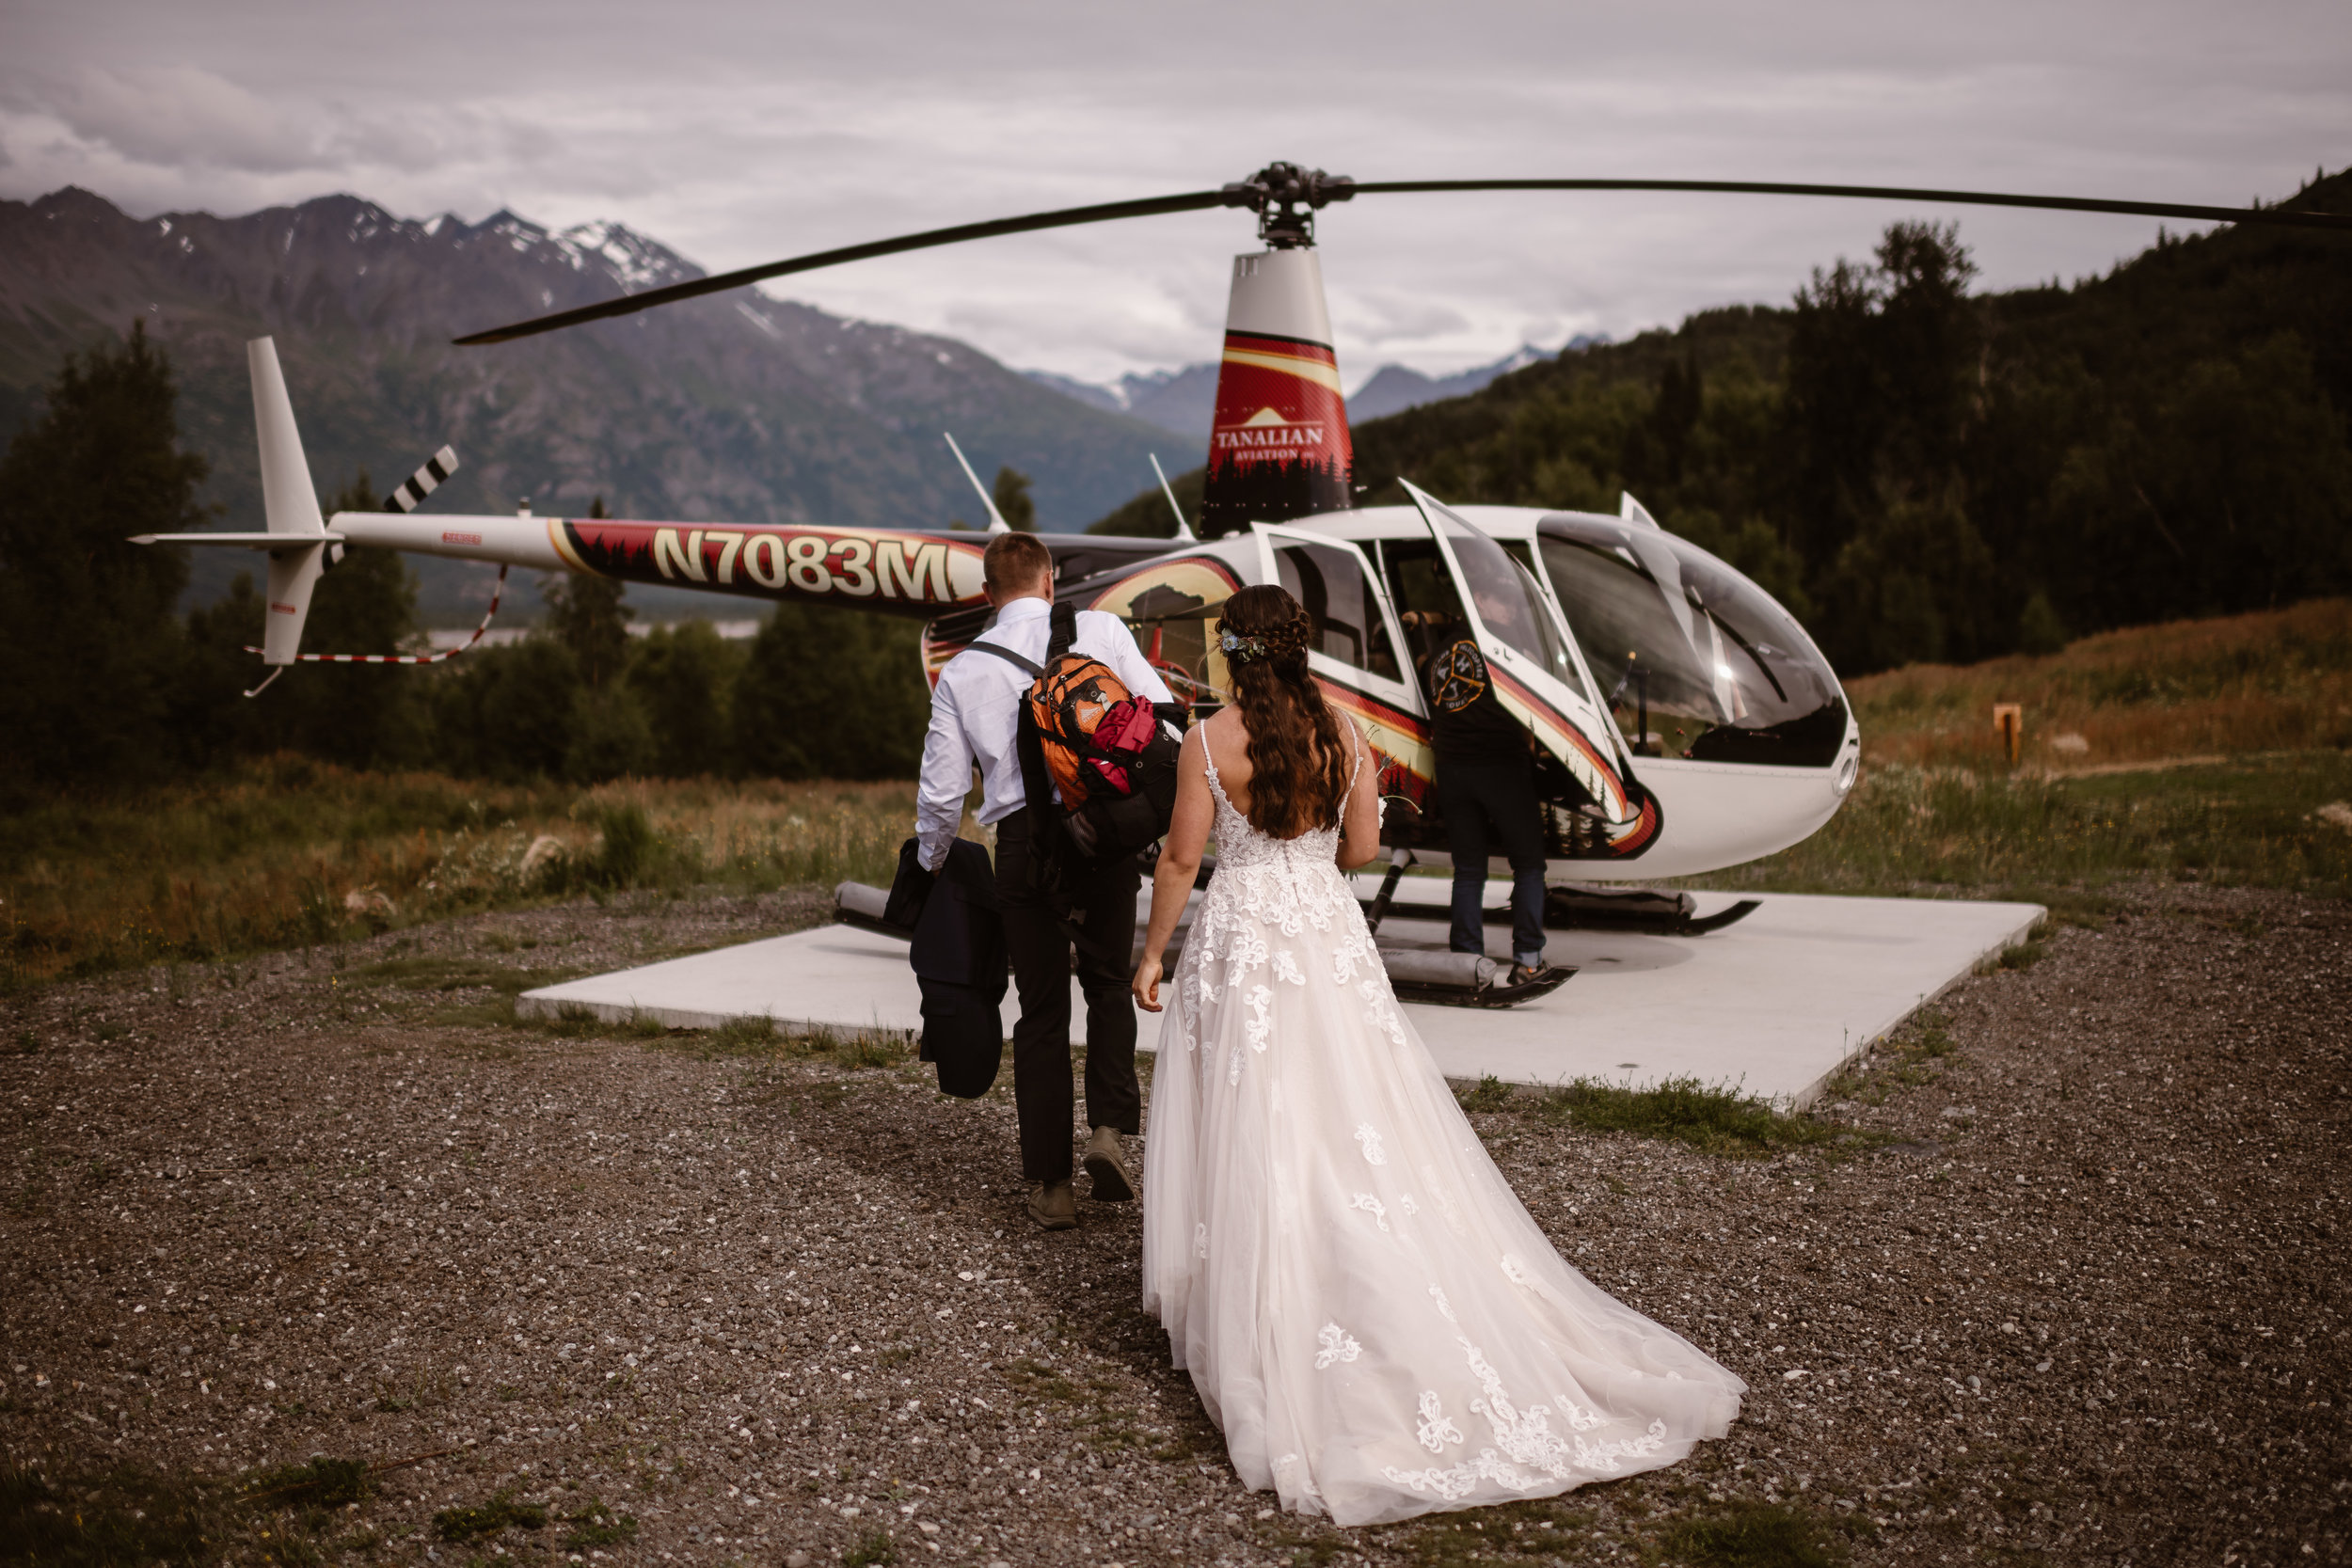 Connor leads the way toward the helicopter as Jordyn follows along close behind. In this elopement picture taken by Adventure Instead, Alaska wedding photographers, the two are about to climb into the red,black, and white helicopter that will take them on their helicopter elopement.